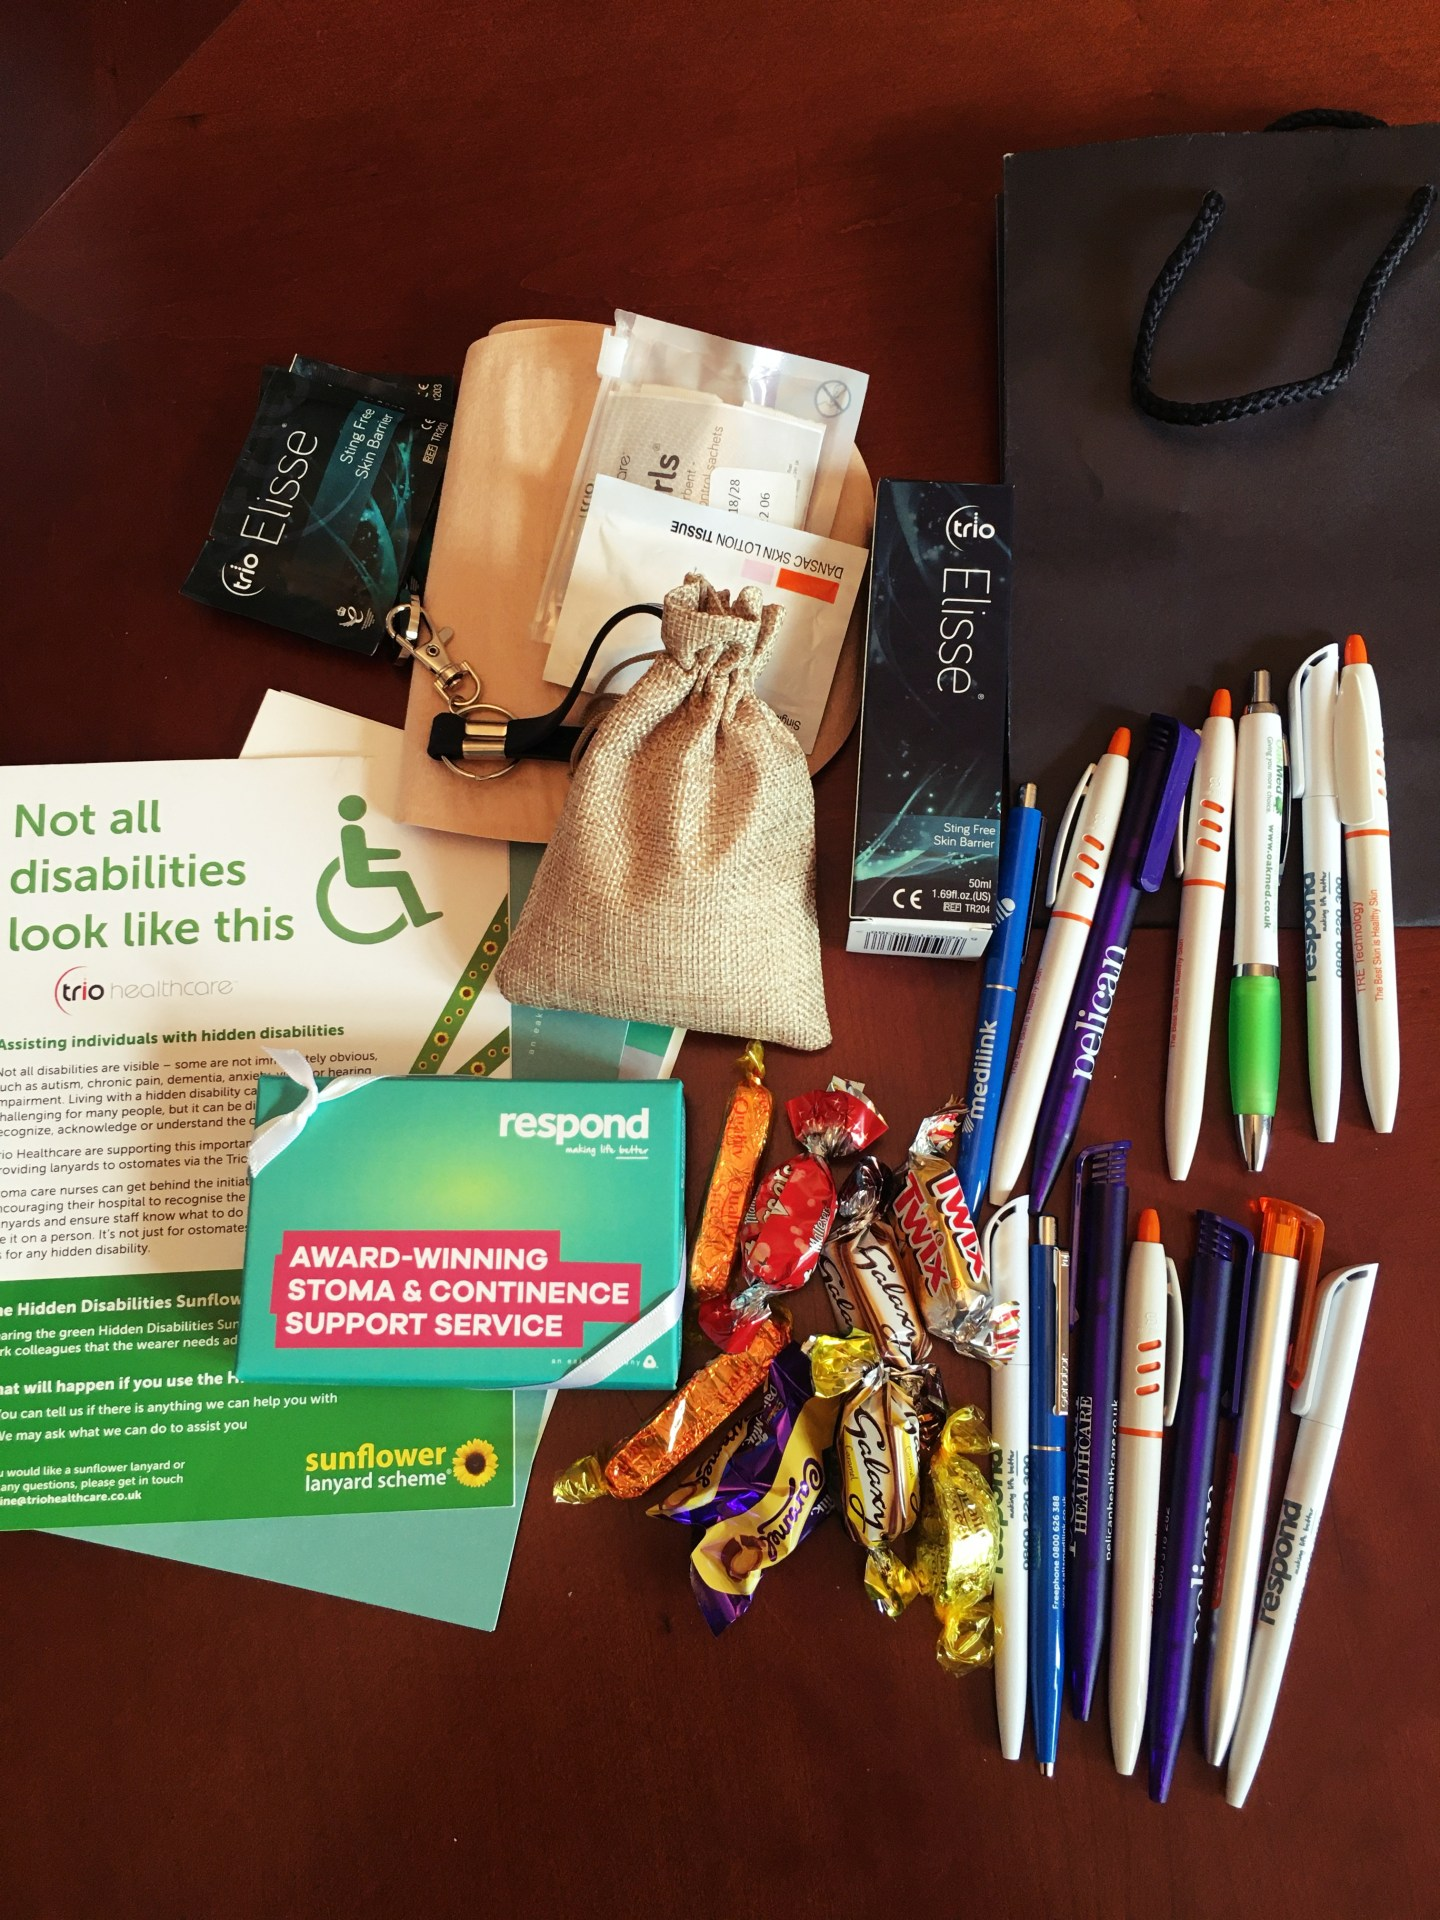 A photo of the freebies I picked up, including stoma samples, sweets and pens.